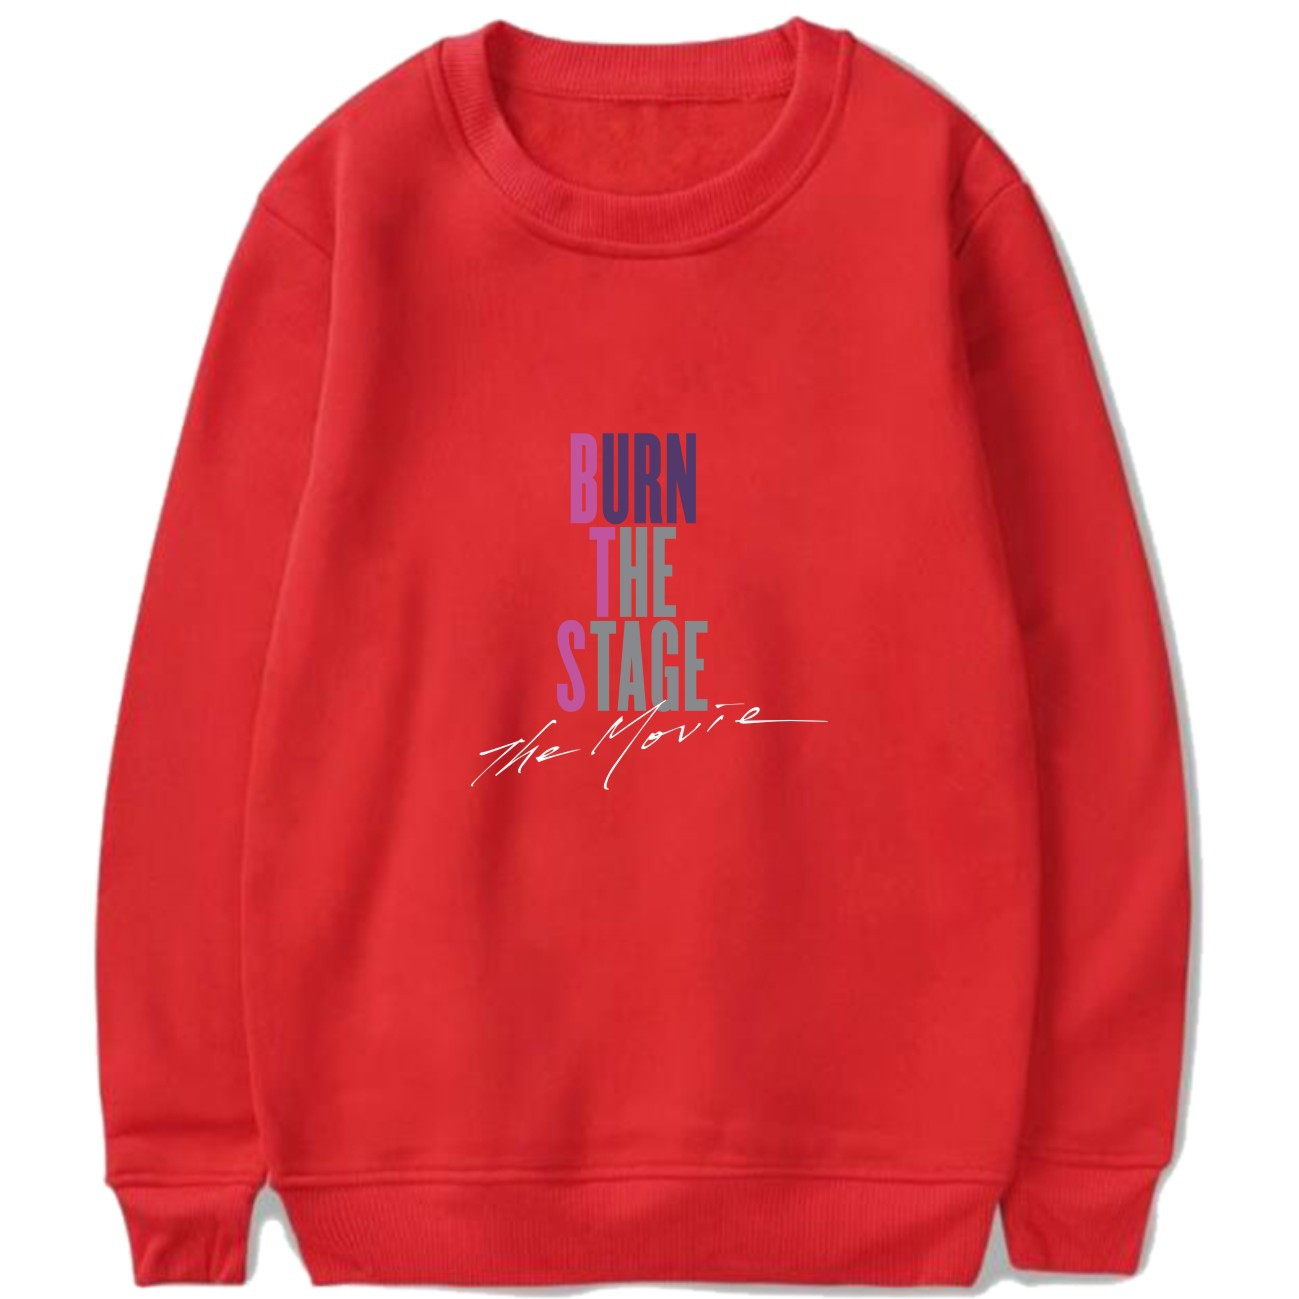 Drop Ship 2018 Autumn Winter BTS Kpop Hoodies Sweatshirts Letters Printed Clothes BURN THE STAGE THE MOVIE Pullover Tops Moletom 2